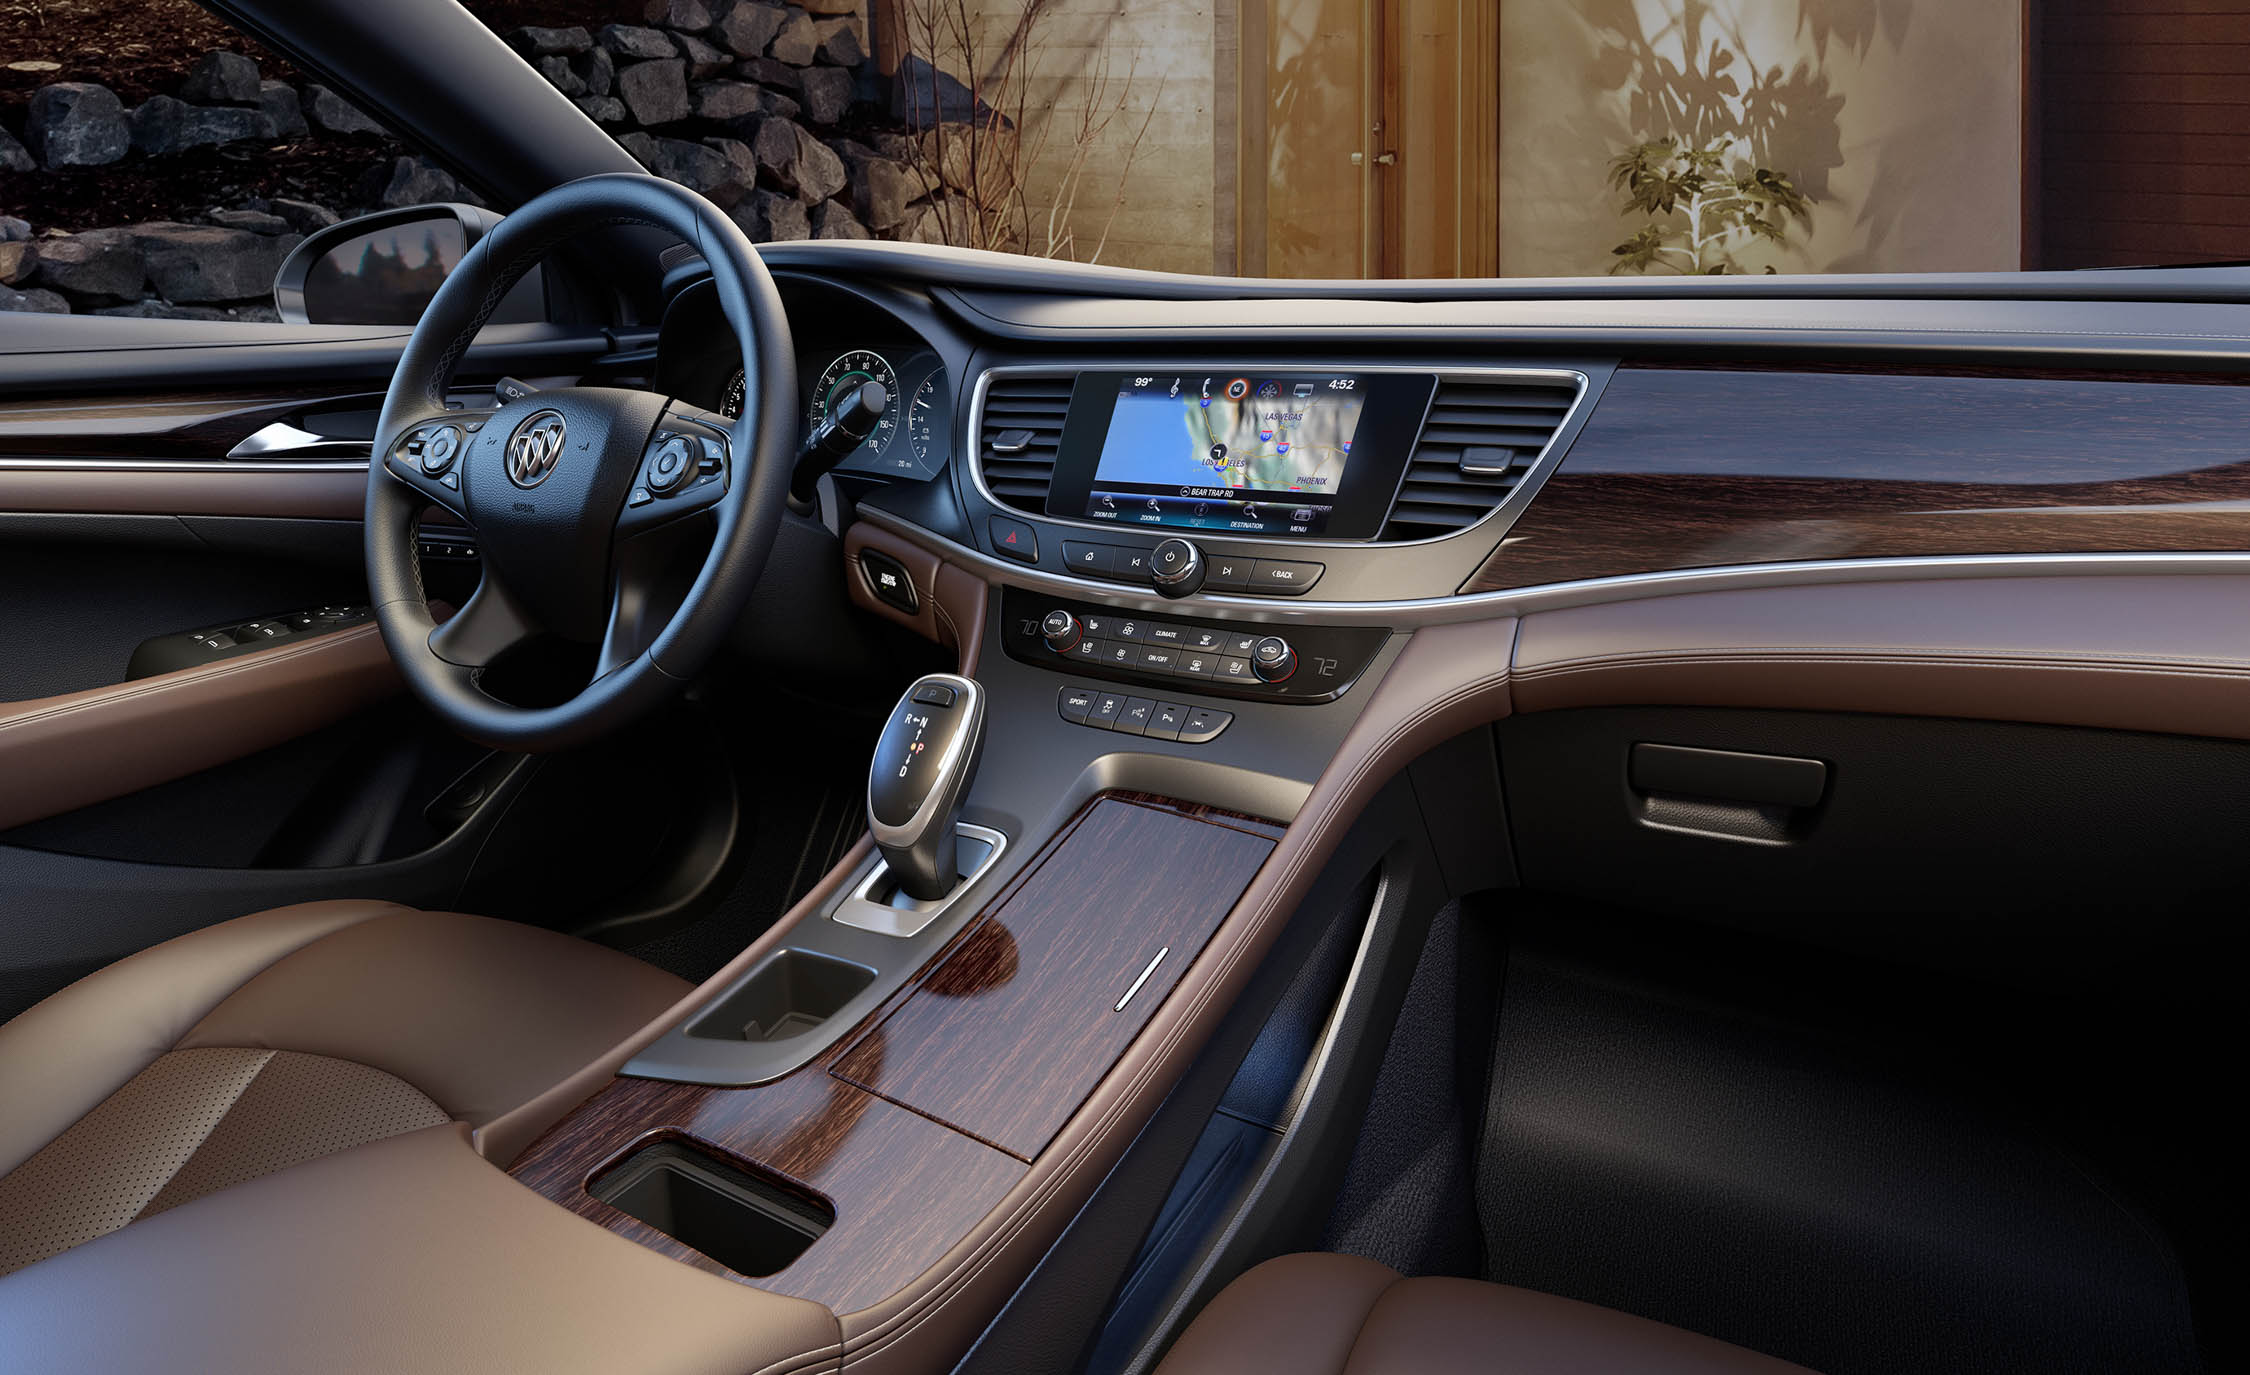 2017 Buick Lacrosse Cockpit And Dashboard Interior (Photo 14 of 26)